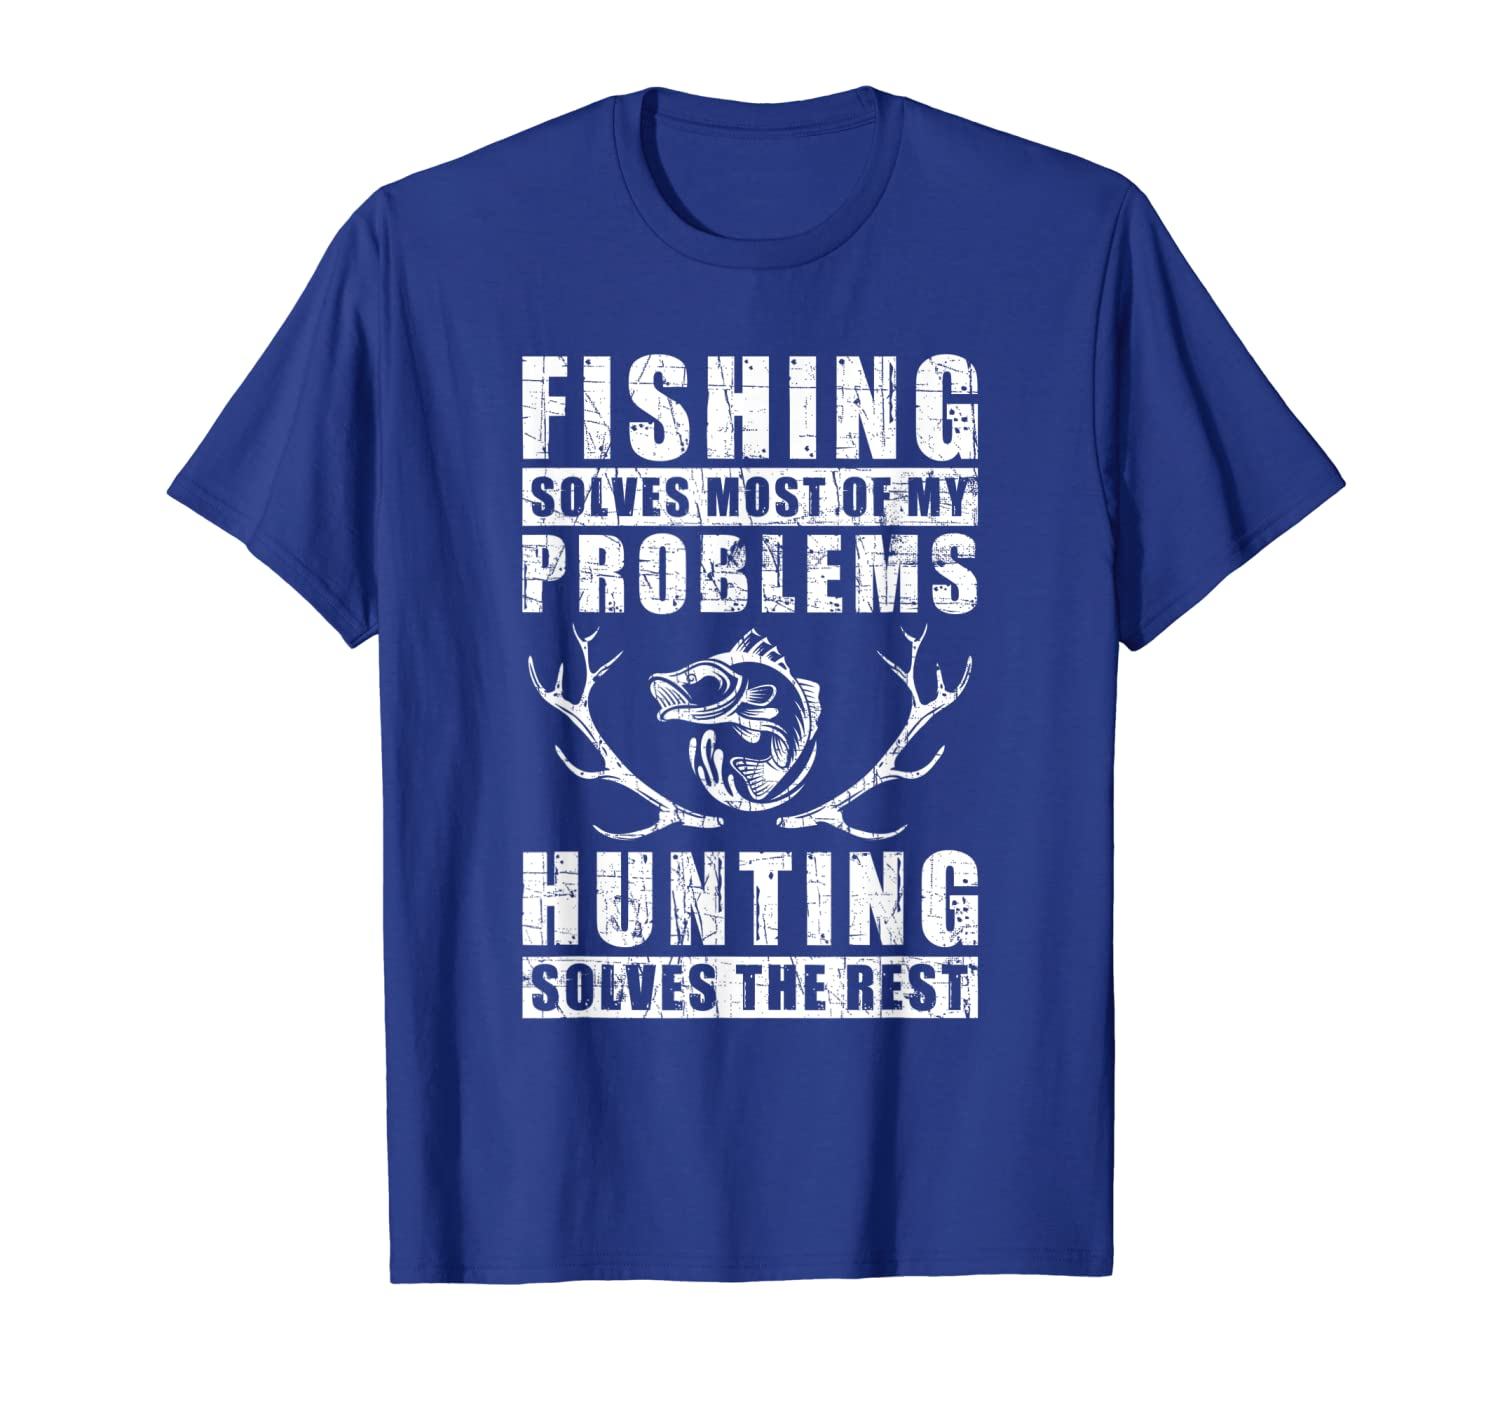 Fishing Solves Most Of My Problems Hunting Quote Gift T-Shirt Unisex Tshirt